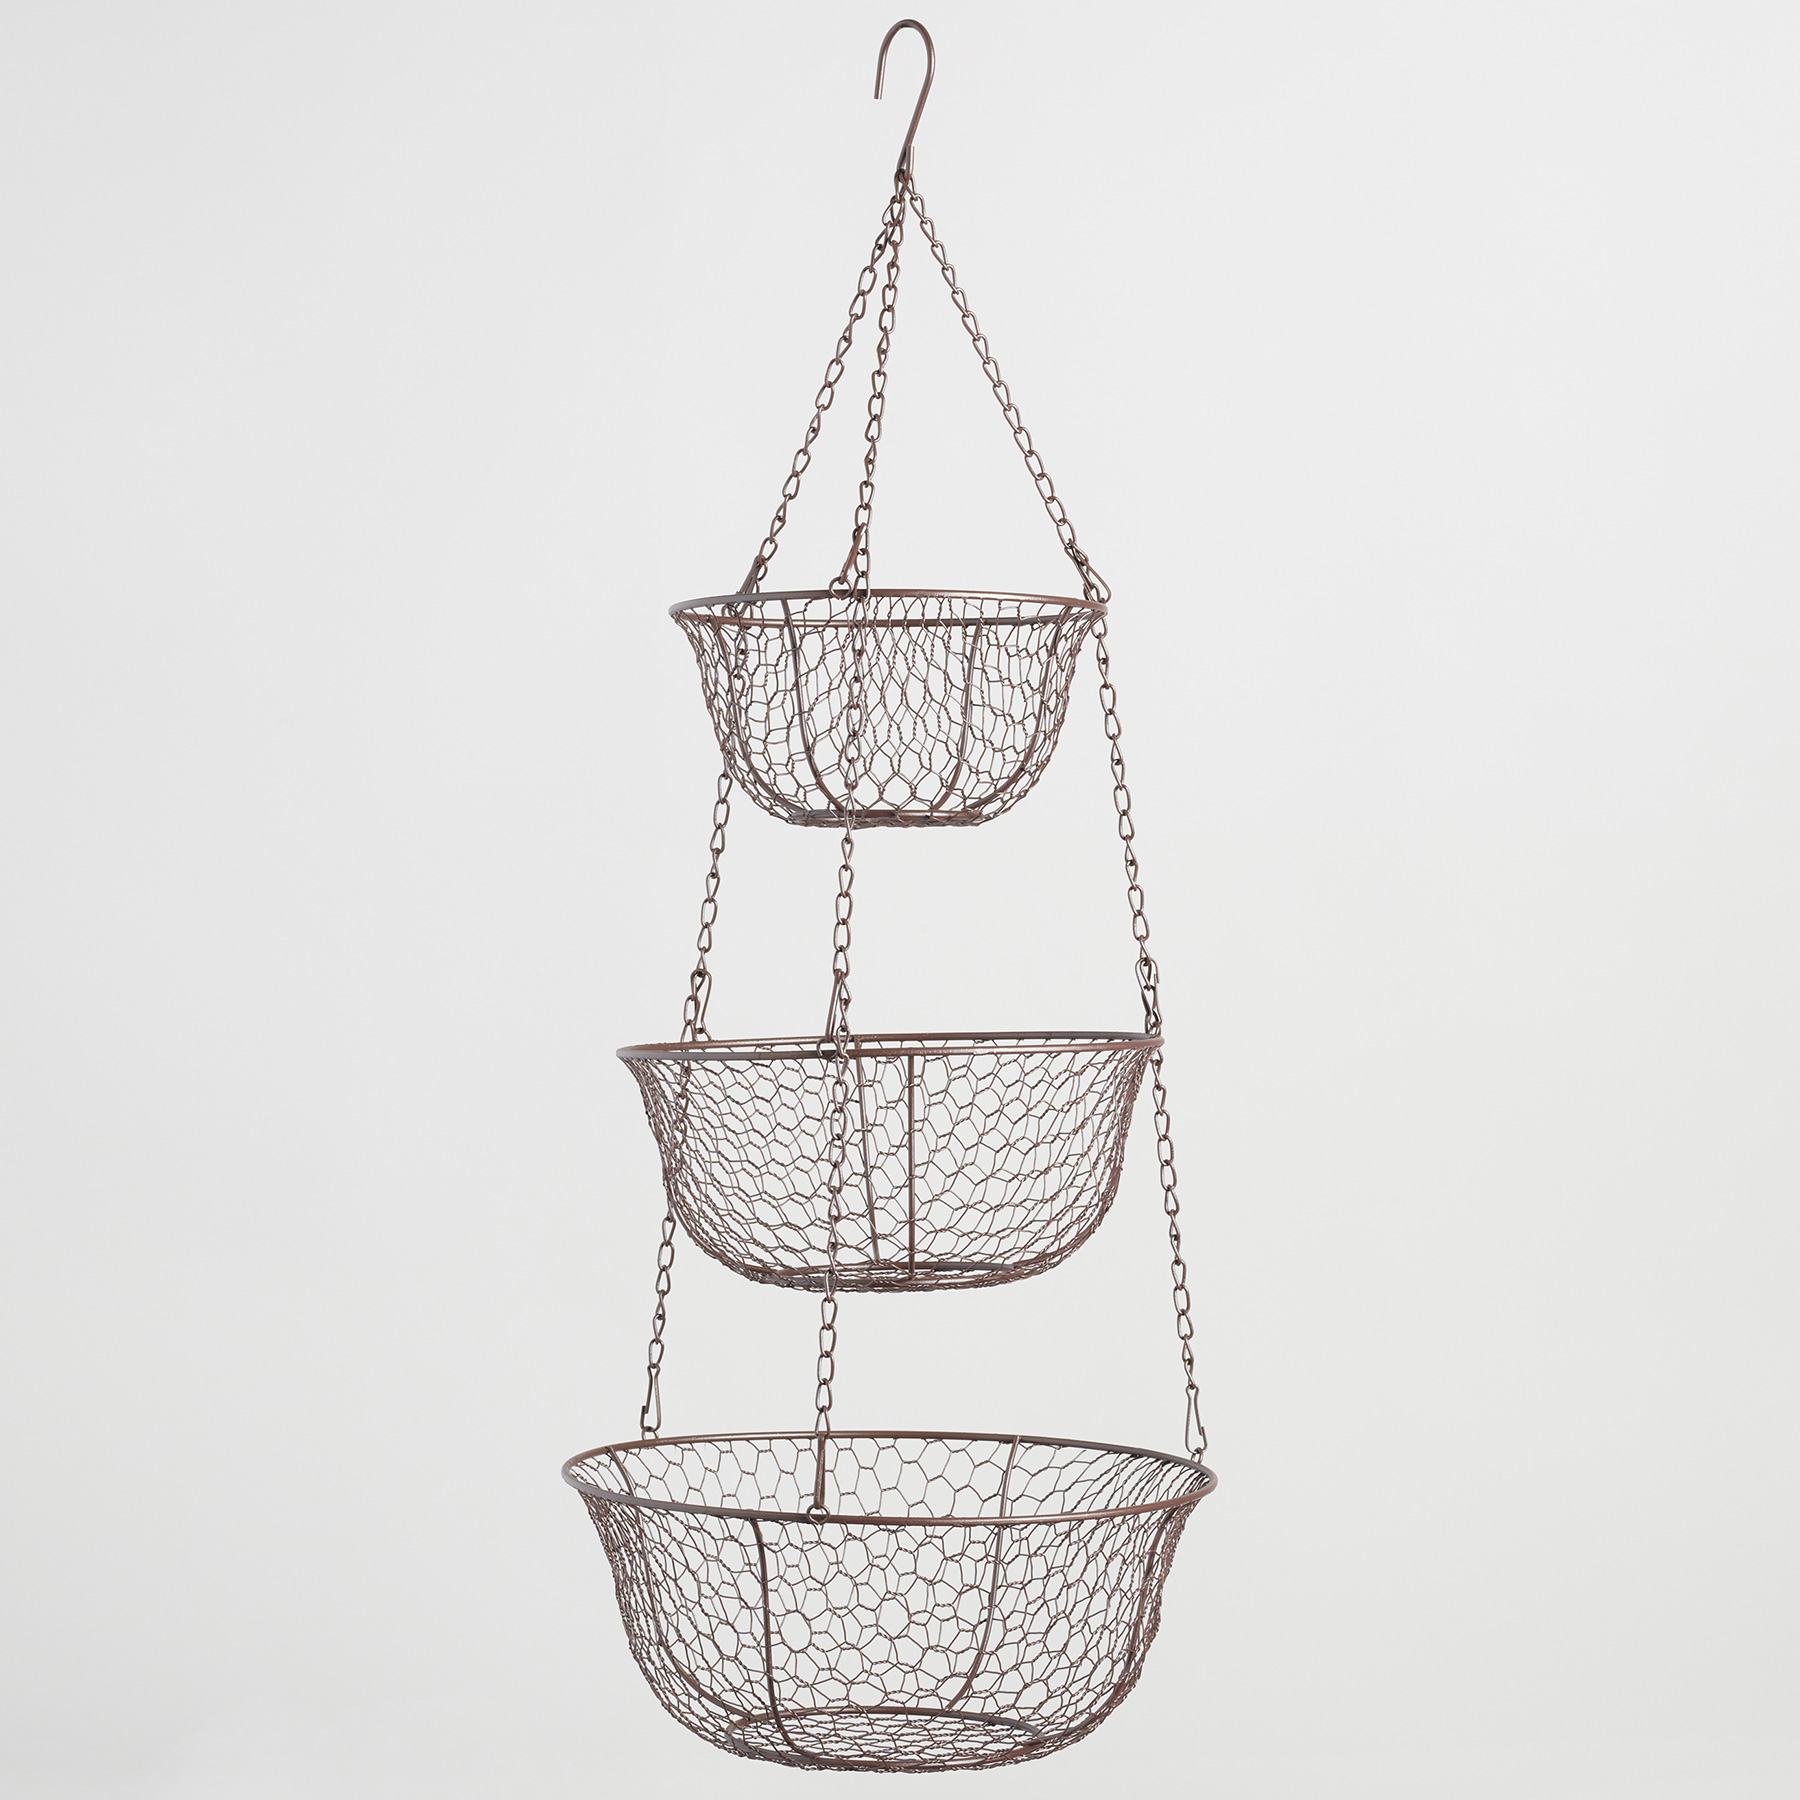 Tiny Home Interior Organizing Products: Wire Three-Tier Hanging Basket